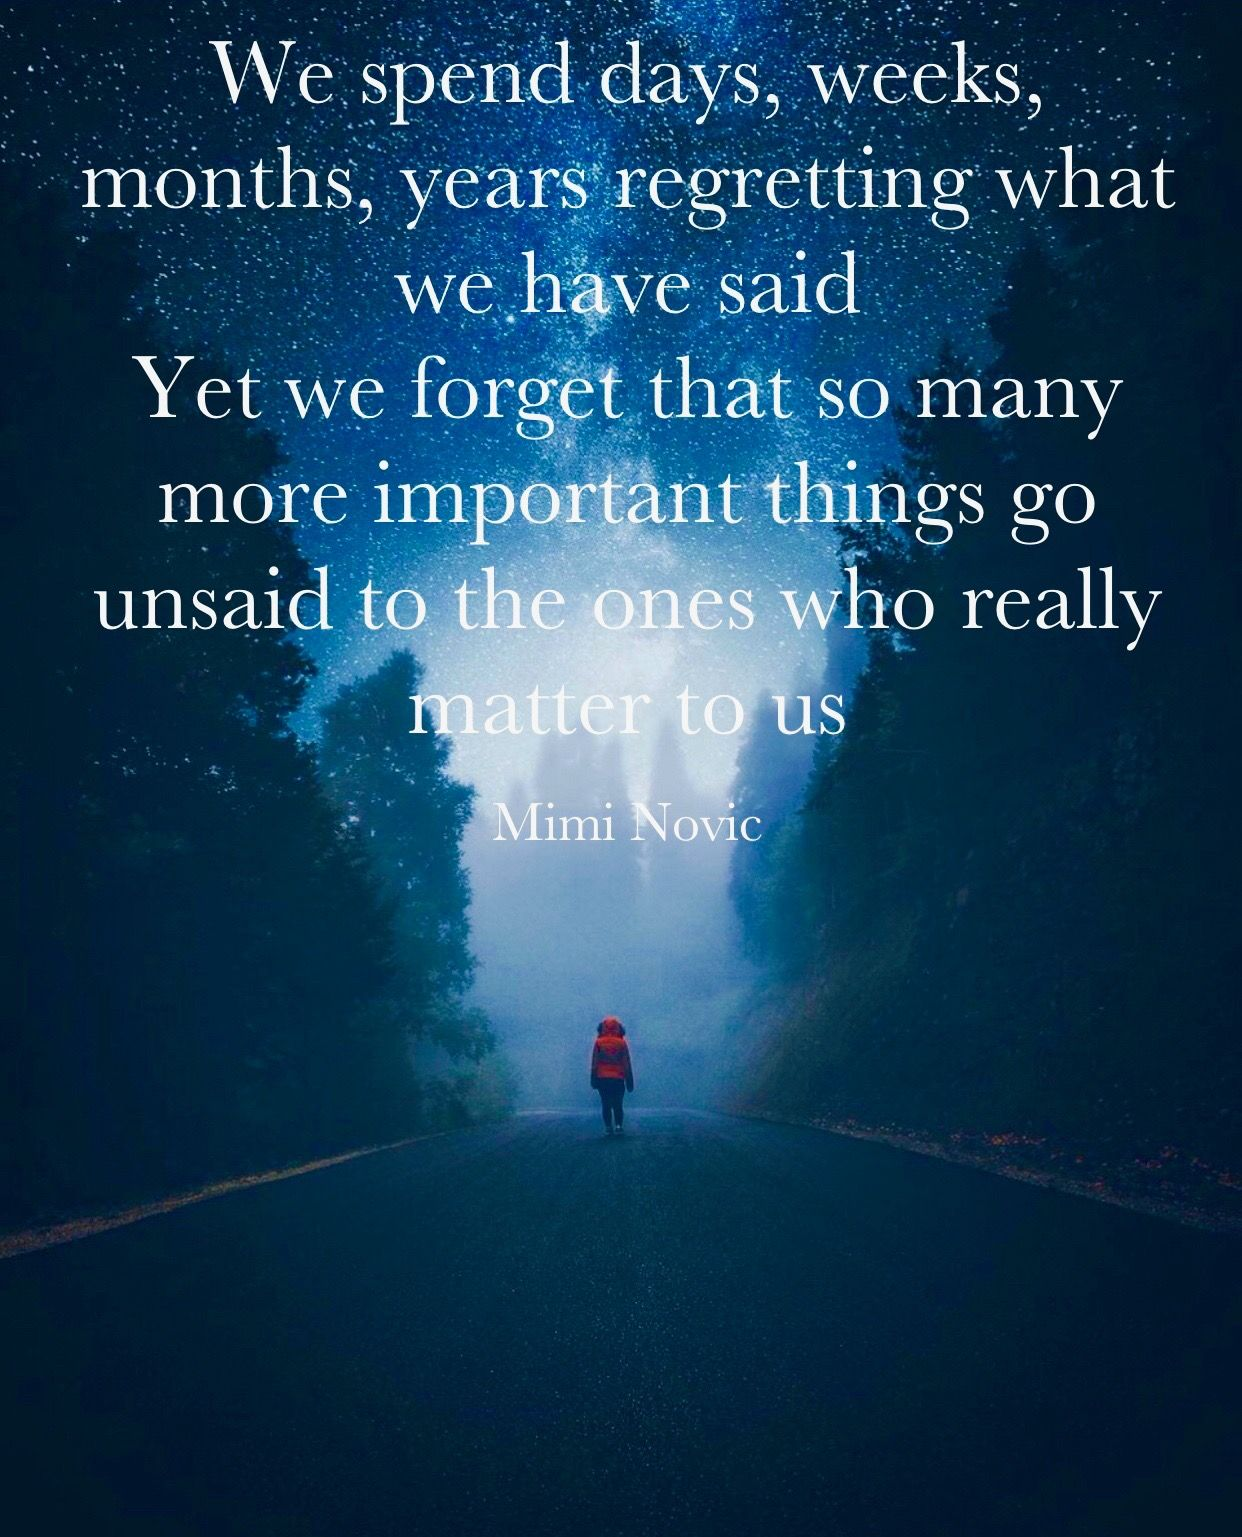 Quotes Of Inspiration And Hope And Love: Inspiring Quotes By Mimi Novic No Regrets Lost Love